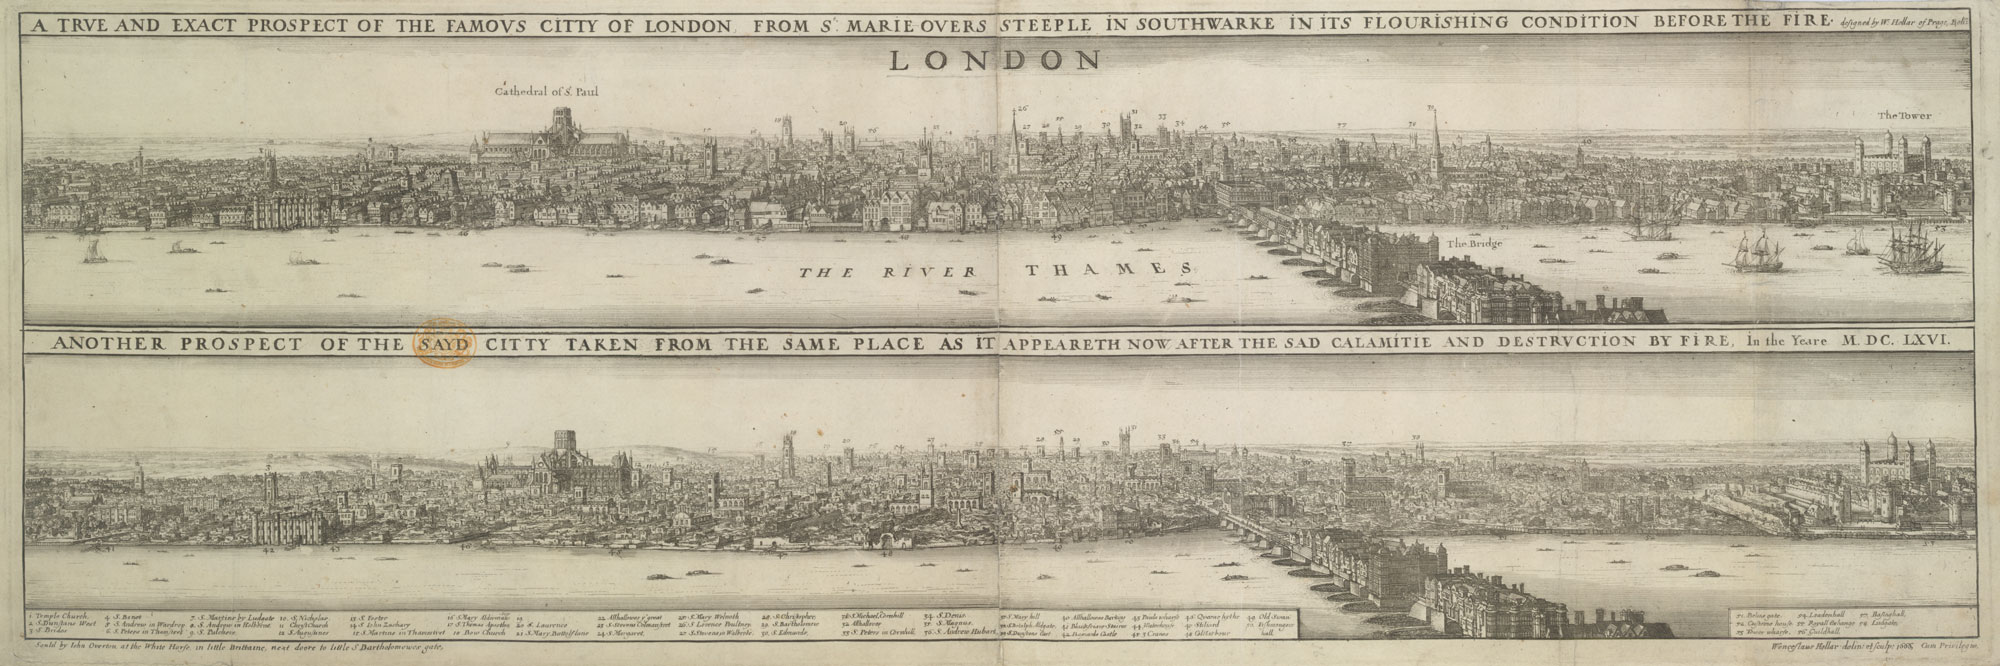 Great Fire Of London Map.Hollar S Great Fire Of London The British Library